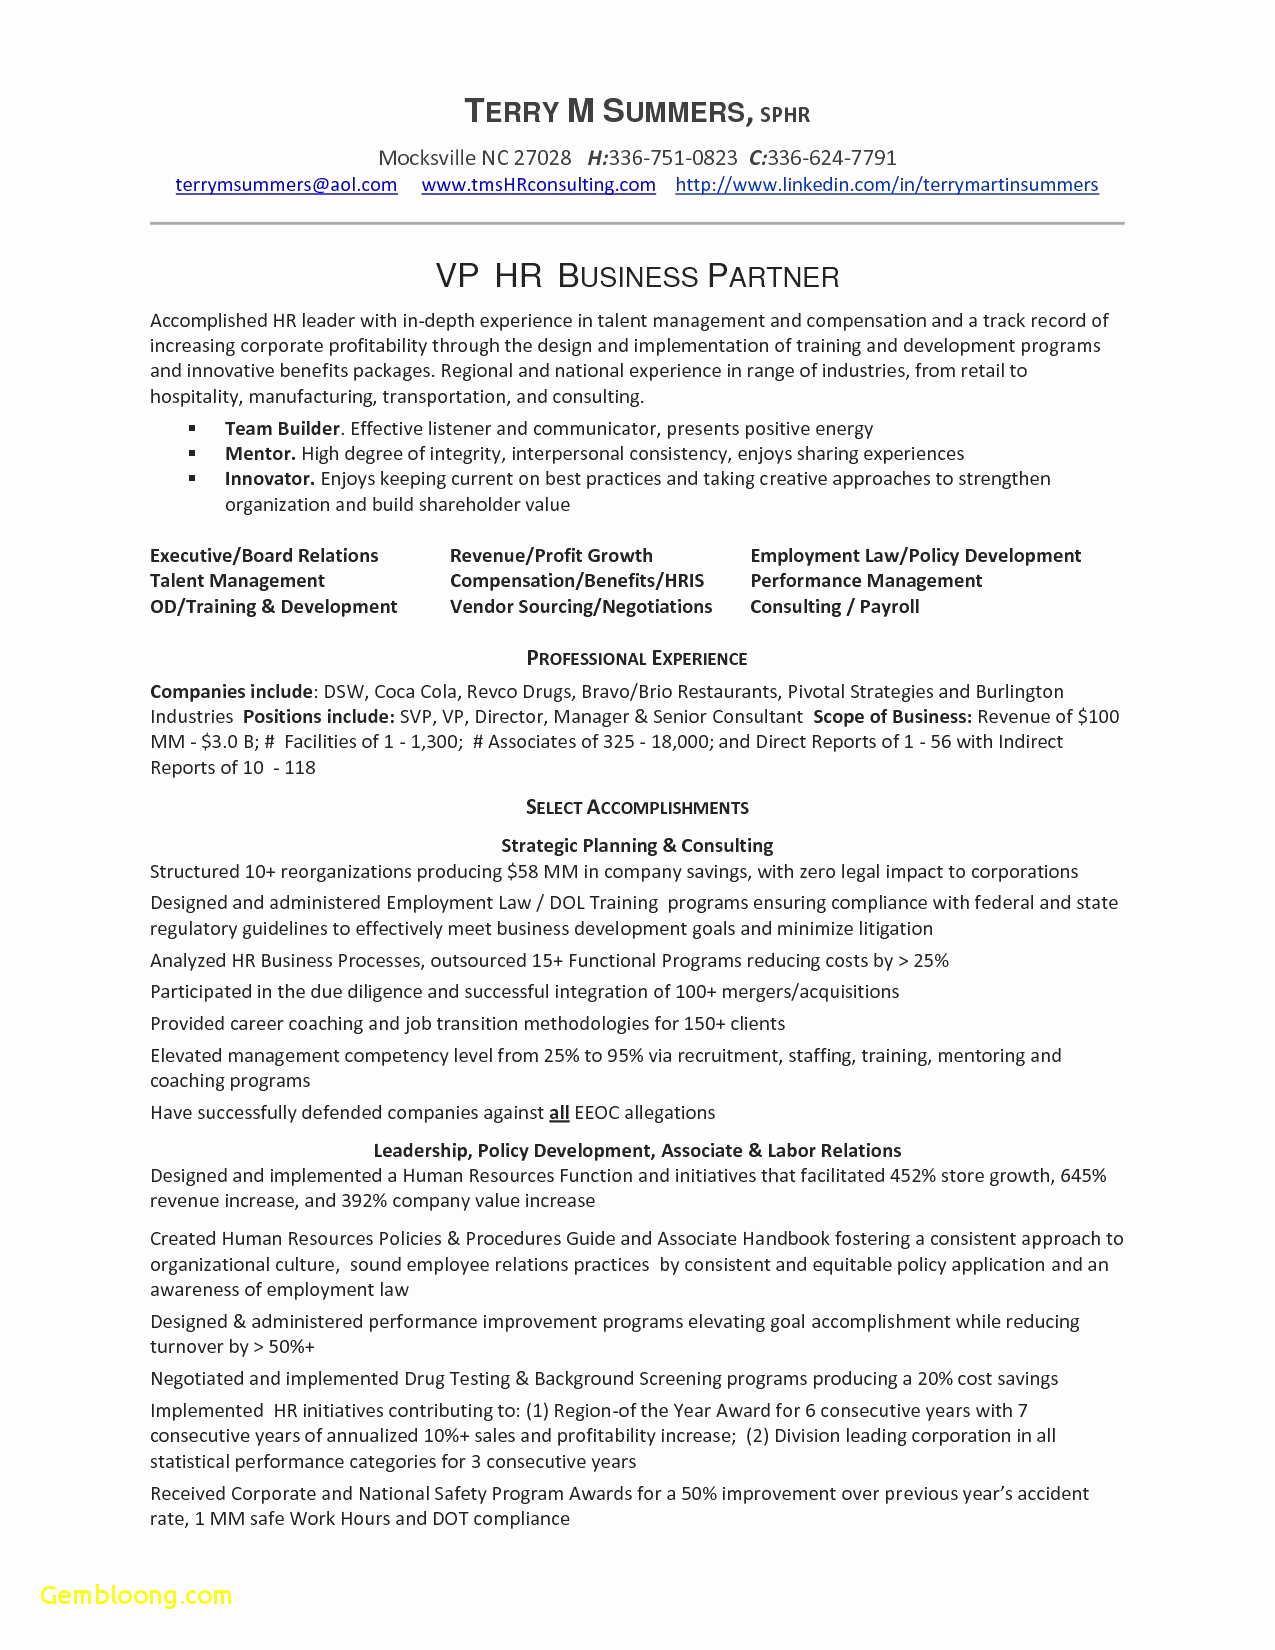 Travel Agent Resume - Travel Agent Resume Sample Examples Great Resume Yelommyphone Panyco